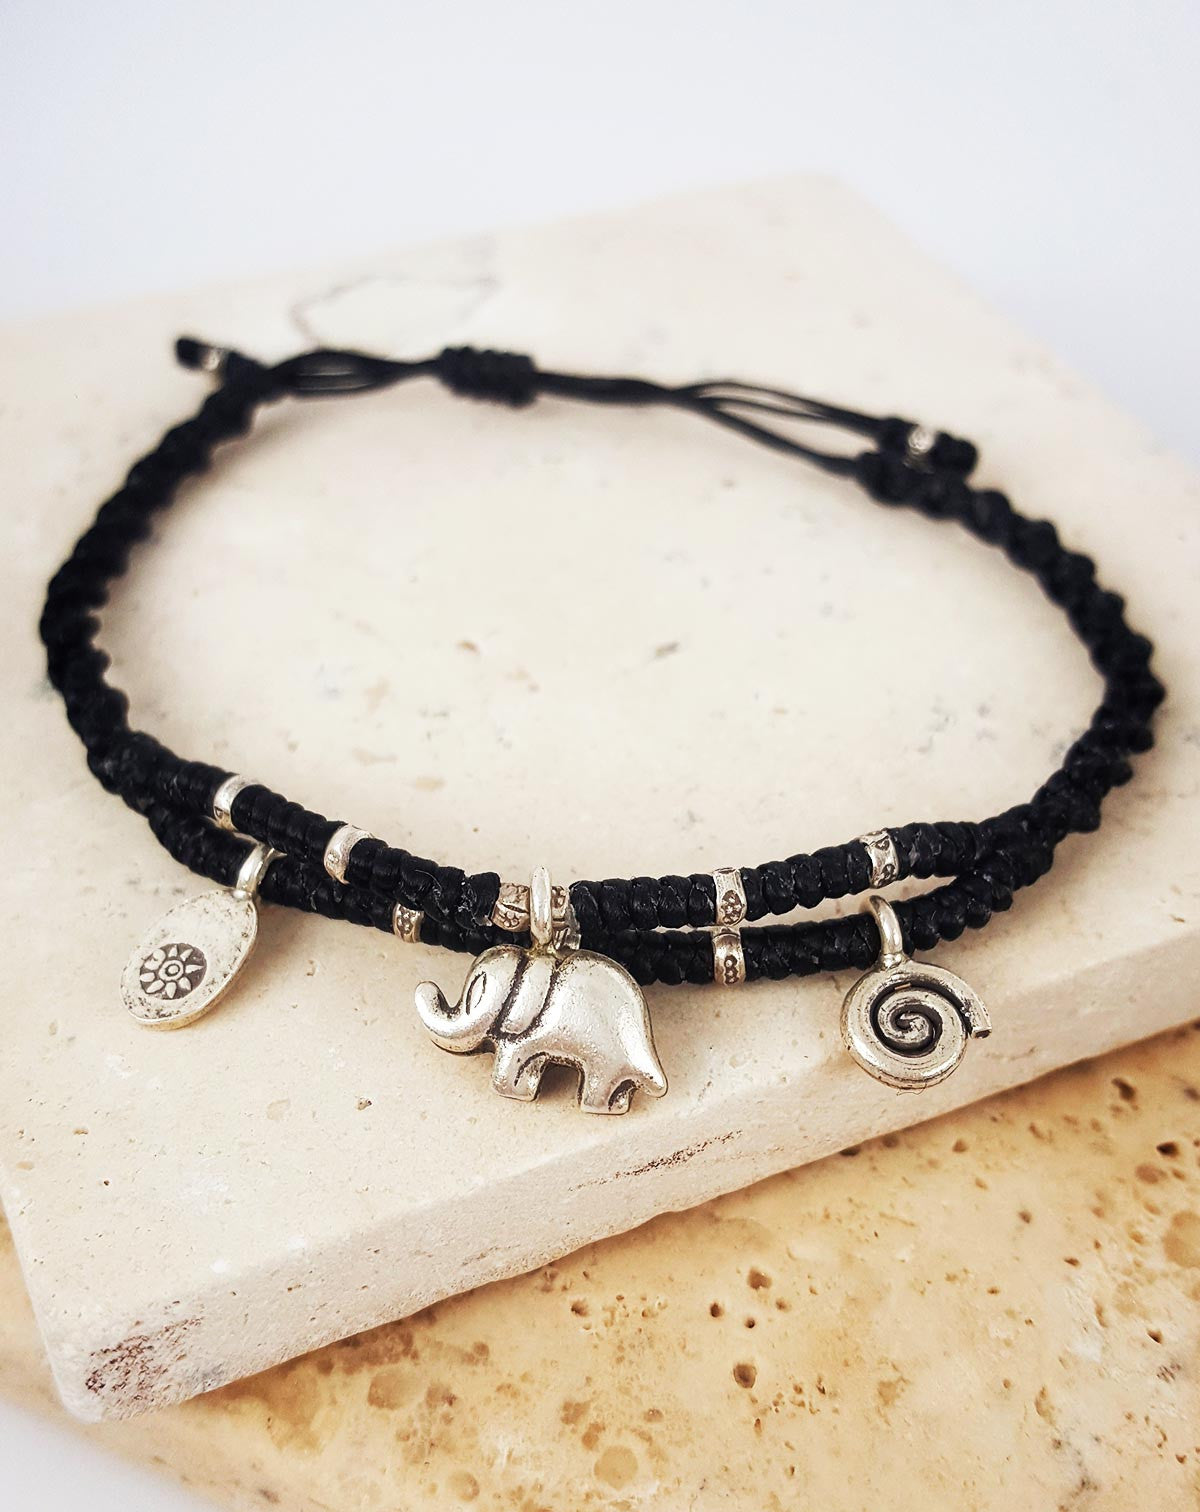 Dreaming of Elephants Bracelet